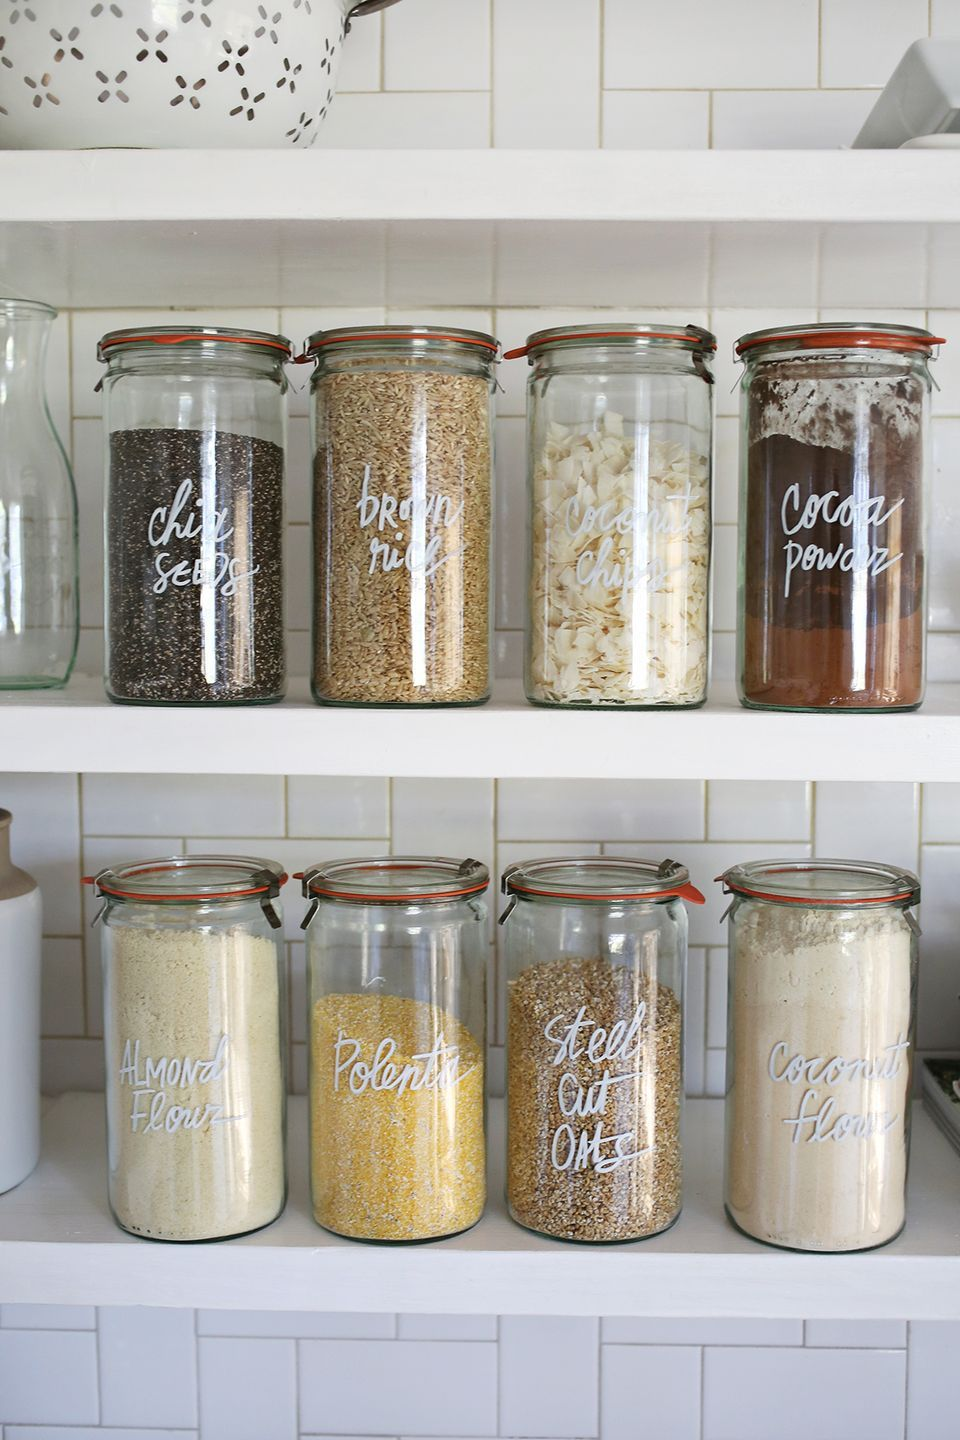 50 projects you can do yourself to update your kitchen despensa diy pantry storage jars solutioingenieria Choice Image